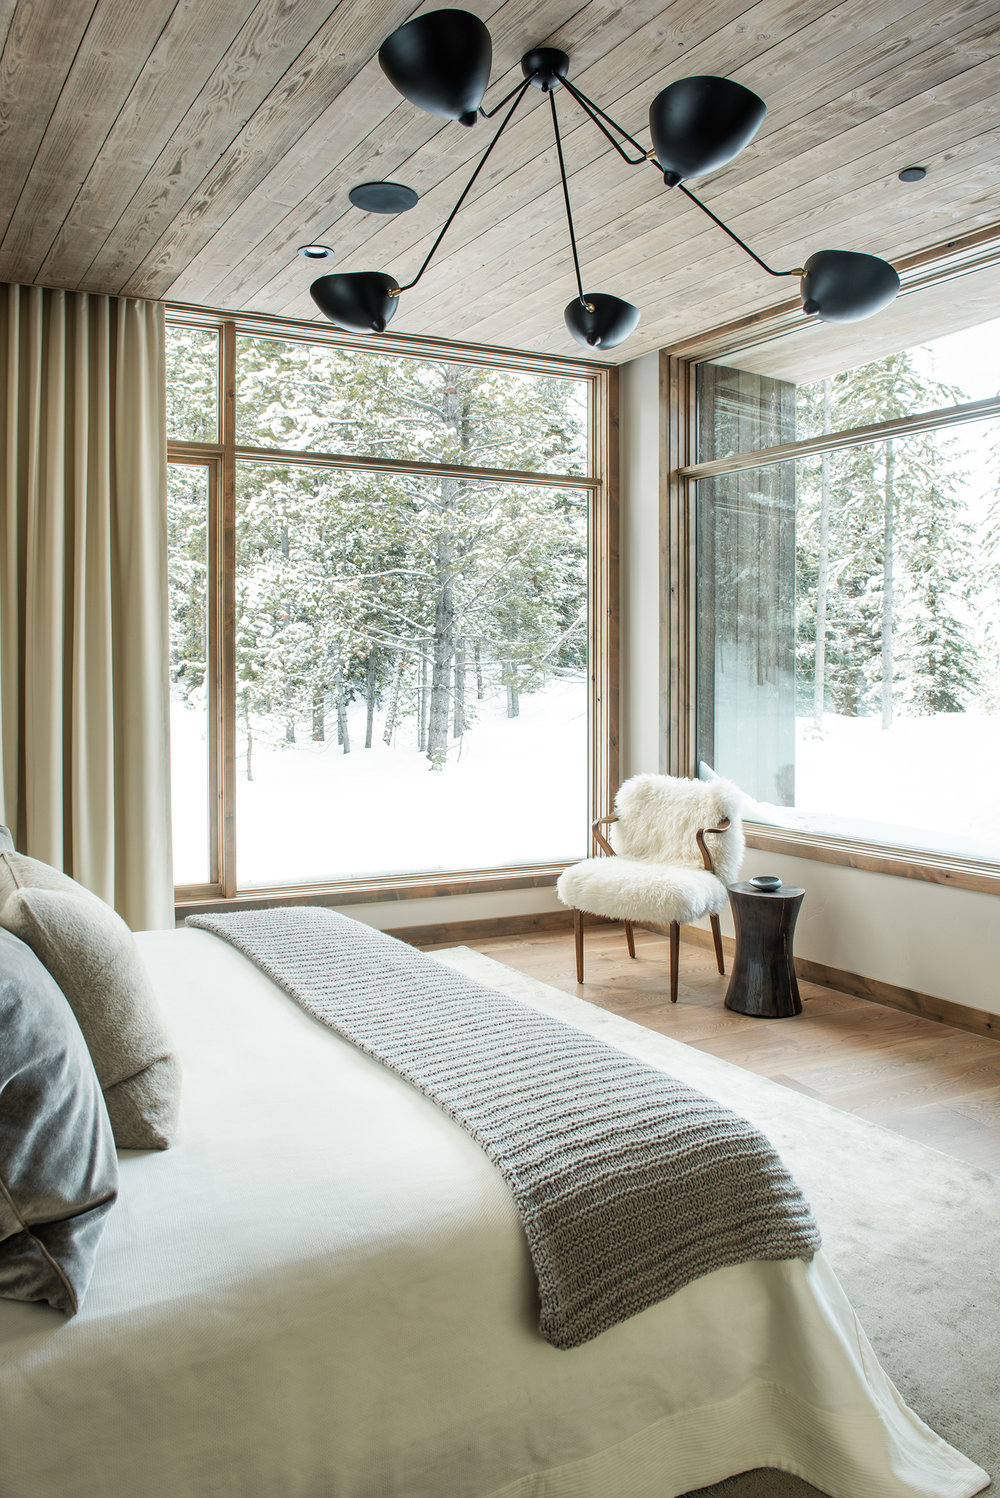 Talk about a room with a view.  The windows are what make this master suite so architecturally stunning.  The furnishings add lovely textures that add to the splendar of the room.